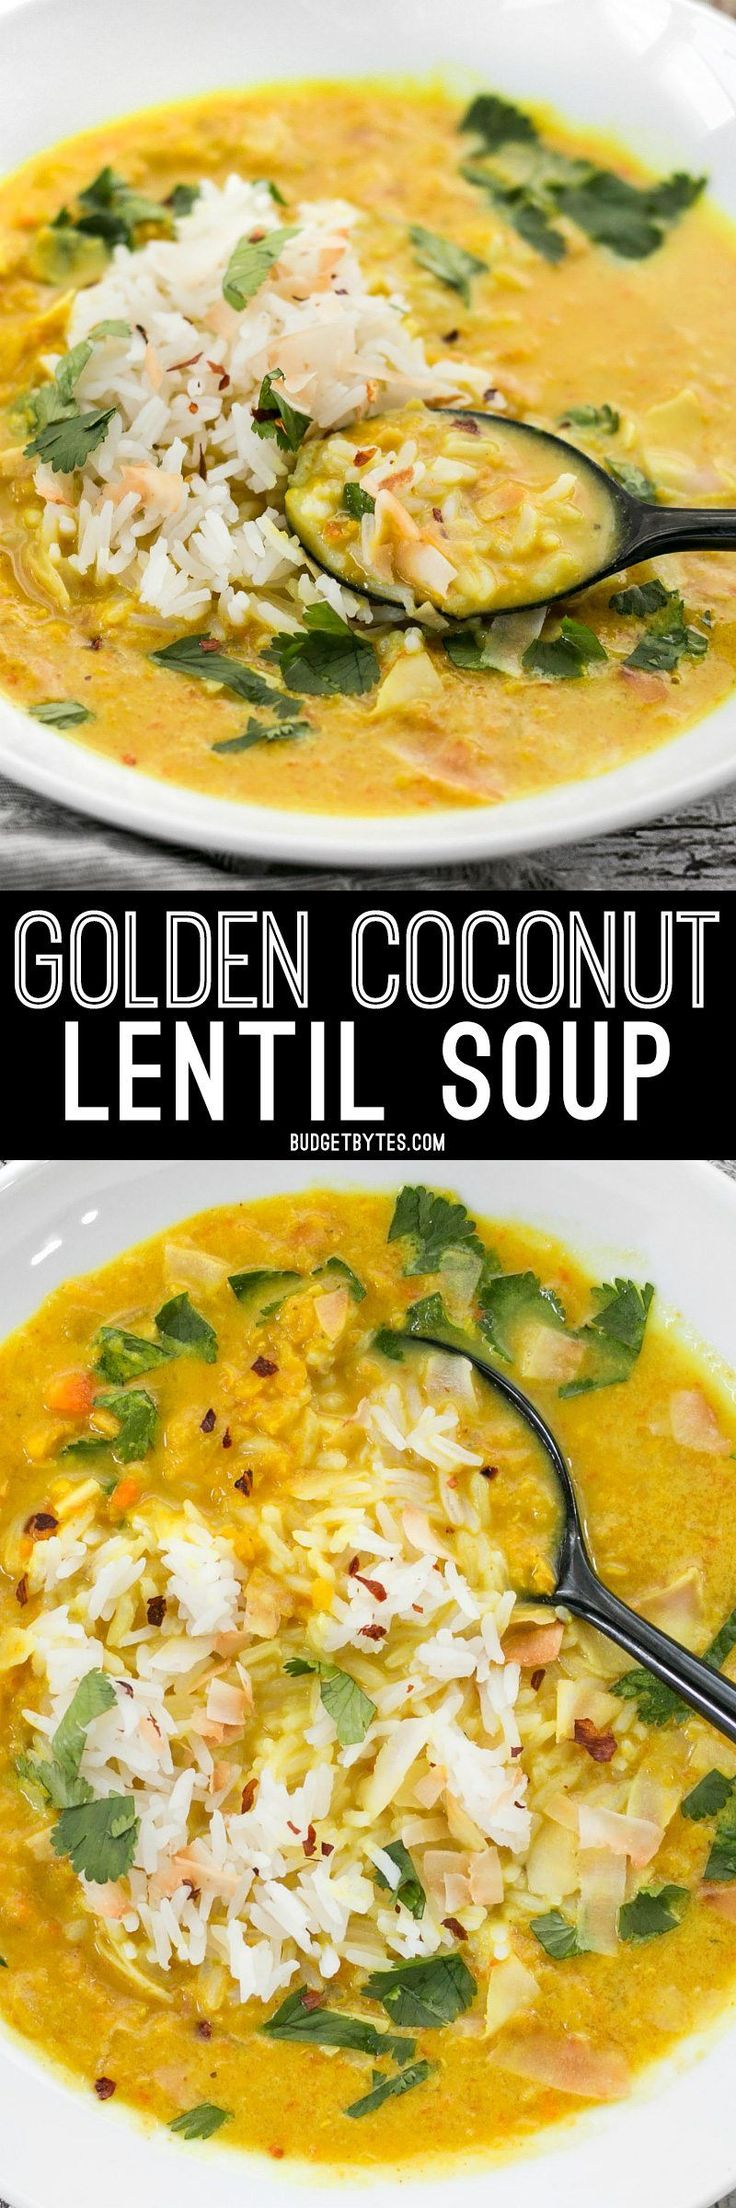 Golden Coconut Lentil Soup is a light and fresh bowl with vibrant turmeric and a handful of fun toppings. BudgetBytes.com